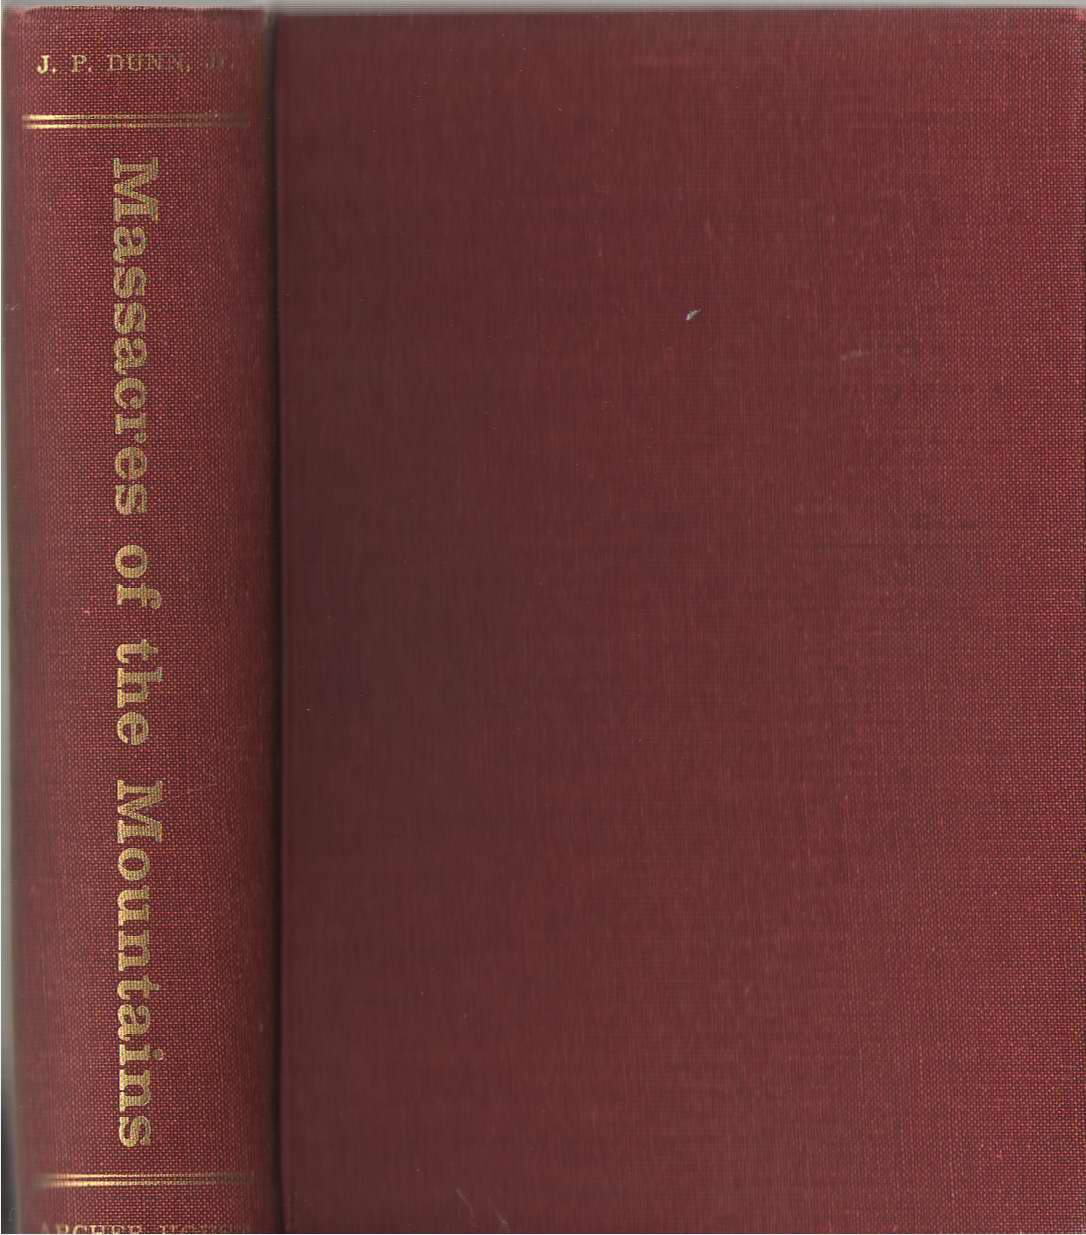 Massacres Of The Mountains A History of the Indian Wars of the Far West, Dunn, Jacob Piatt